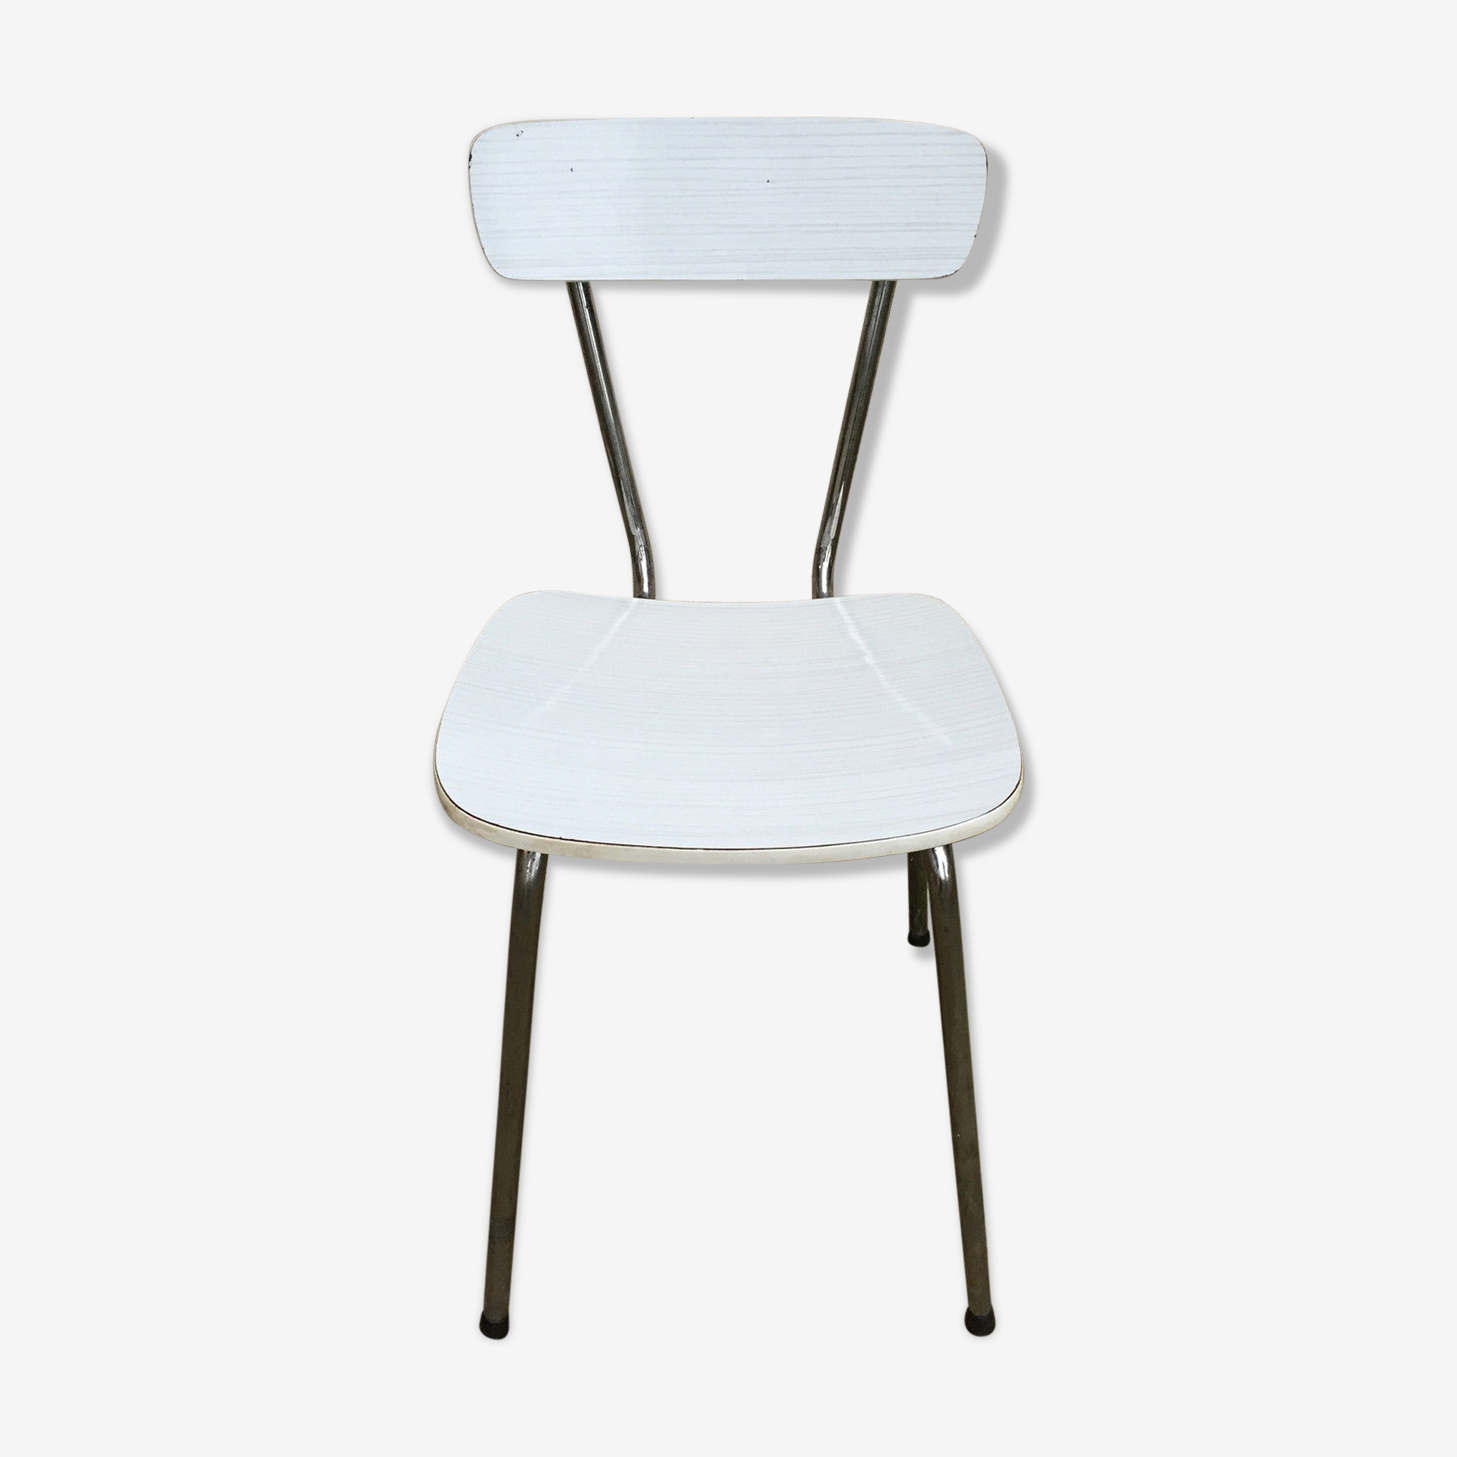 Chaises Formica Blanche Vintage Cuisine Annees 60 Formica Blanc